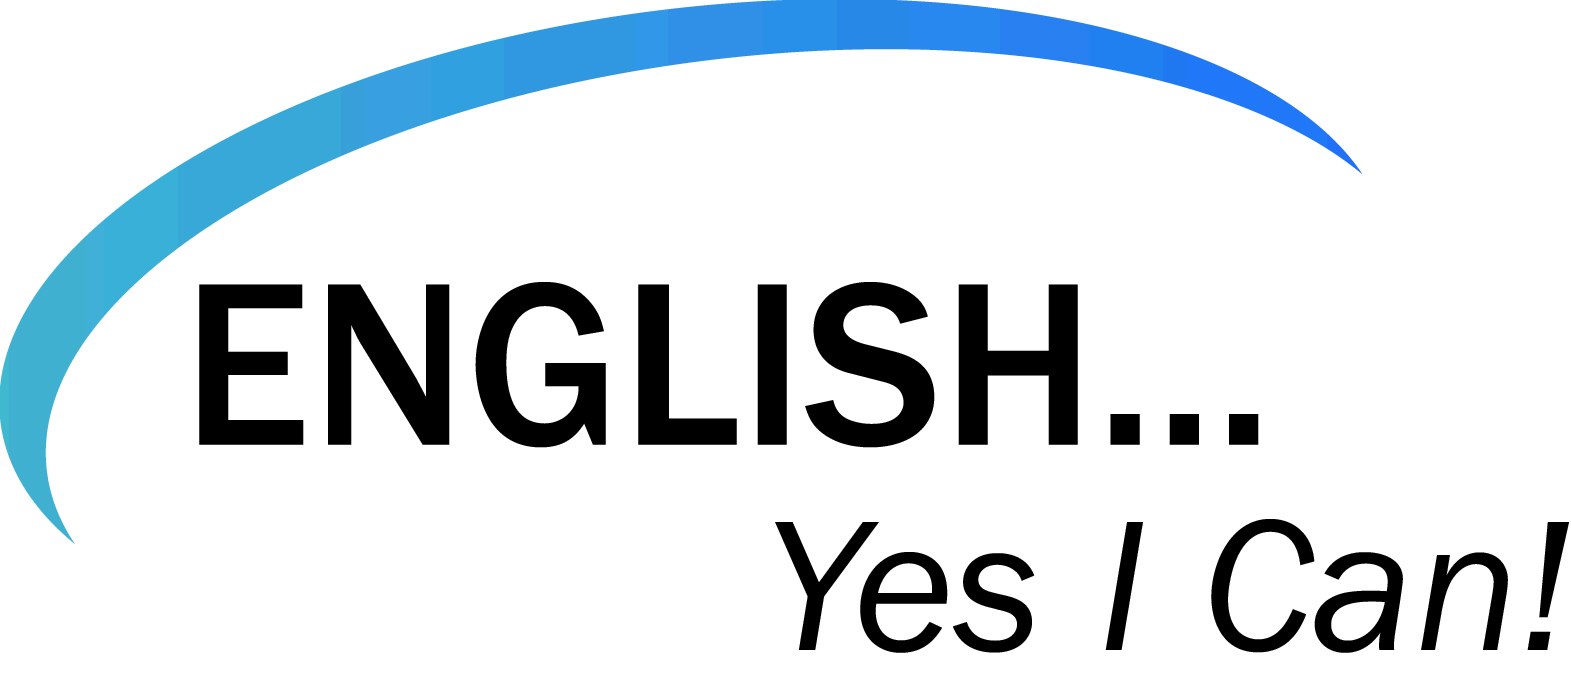 A video telecourse designed to teach English literacy skills to adult learners.